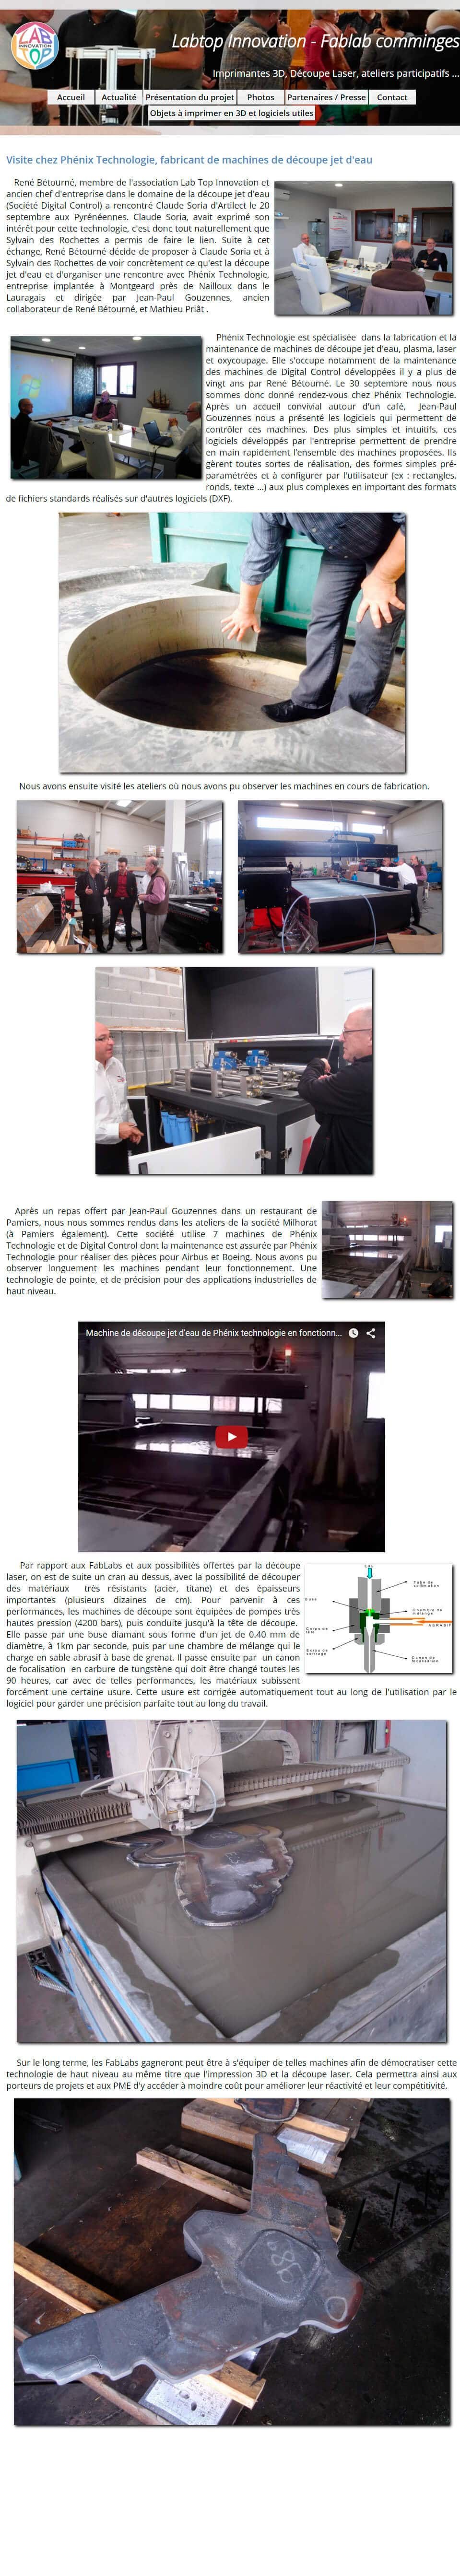 Sans titre 1 - article fablab